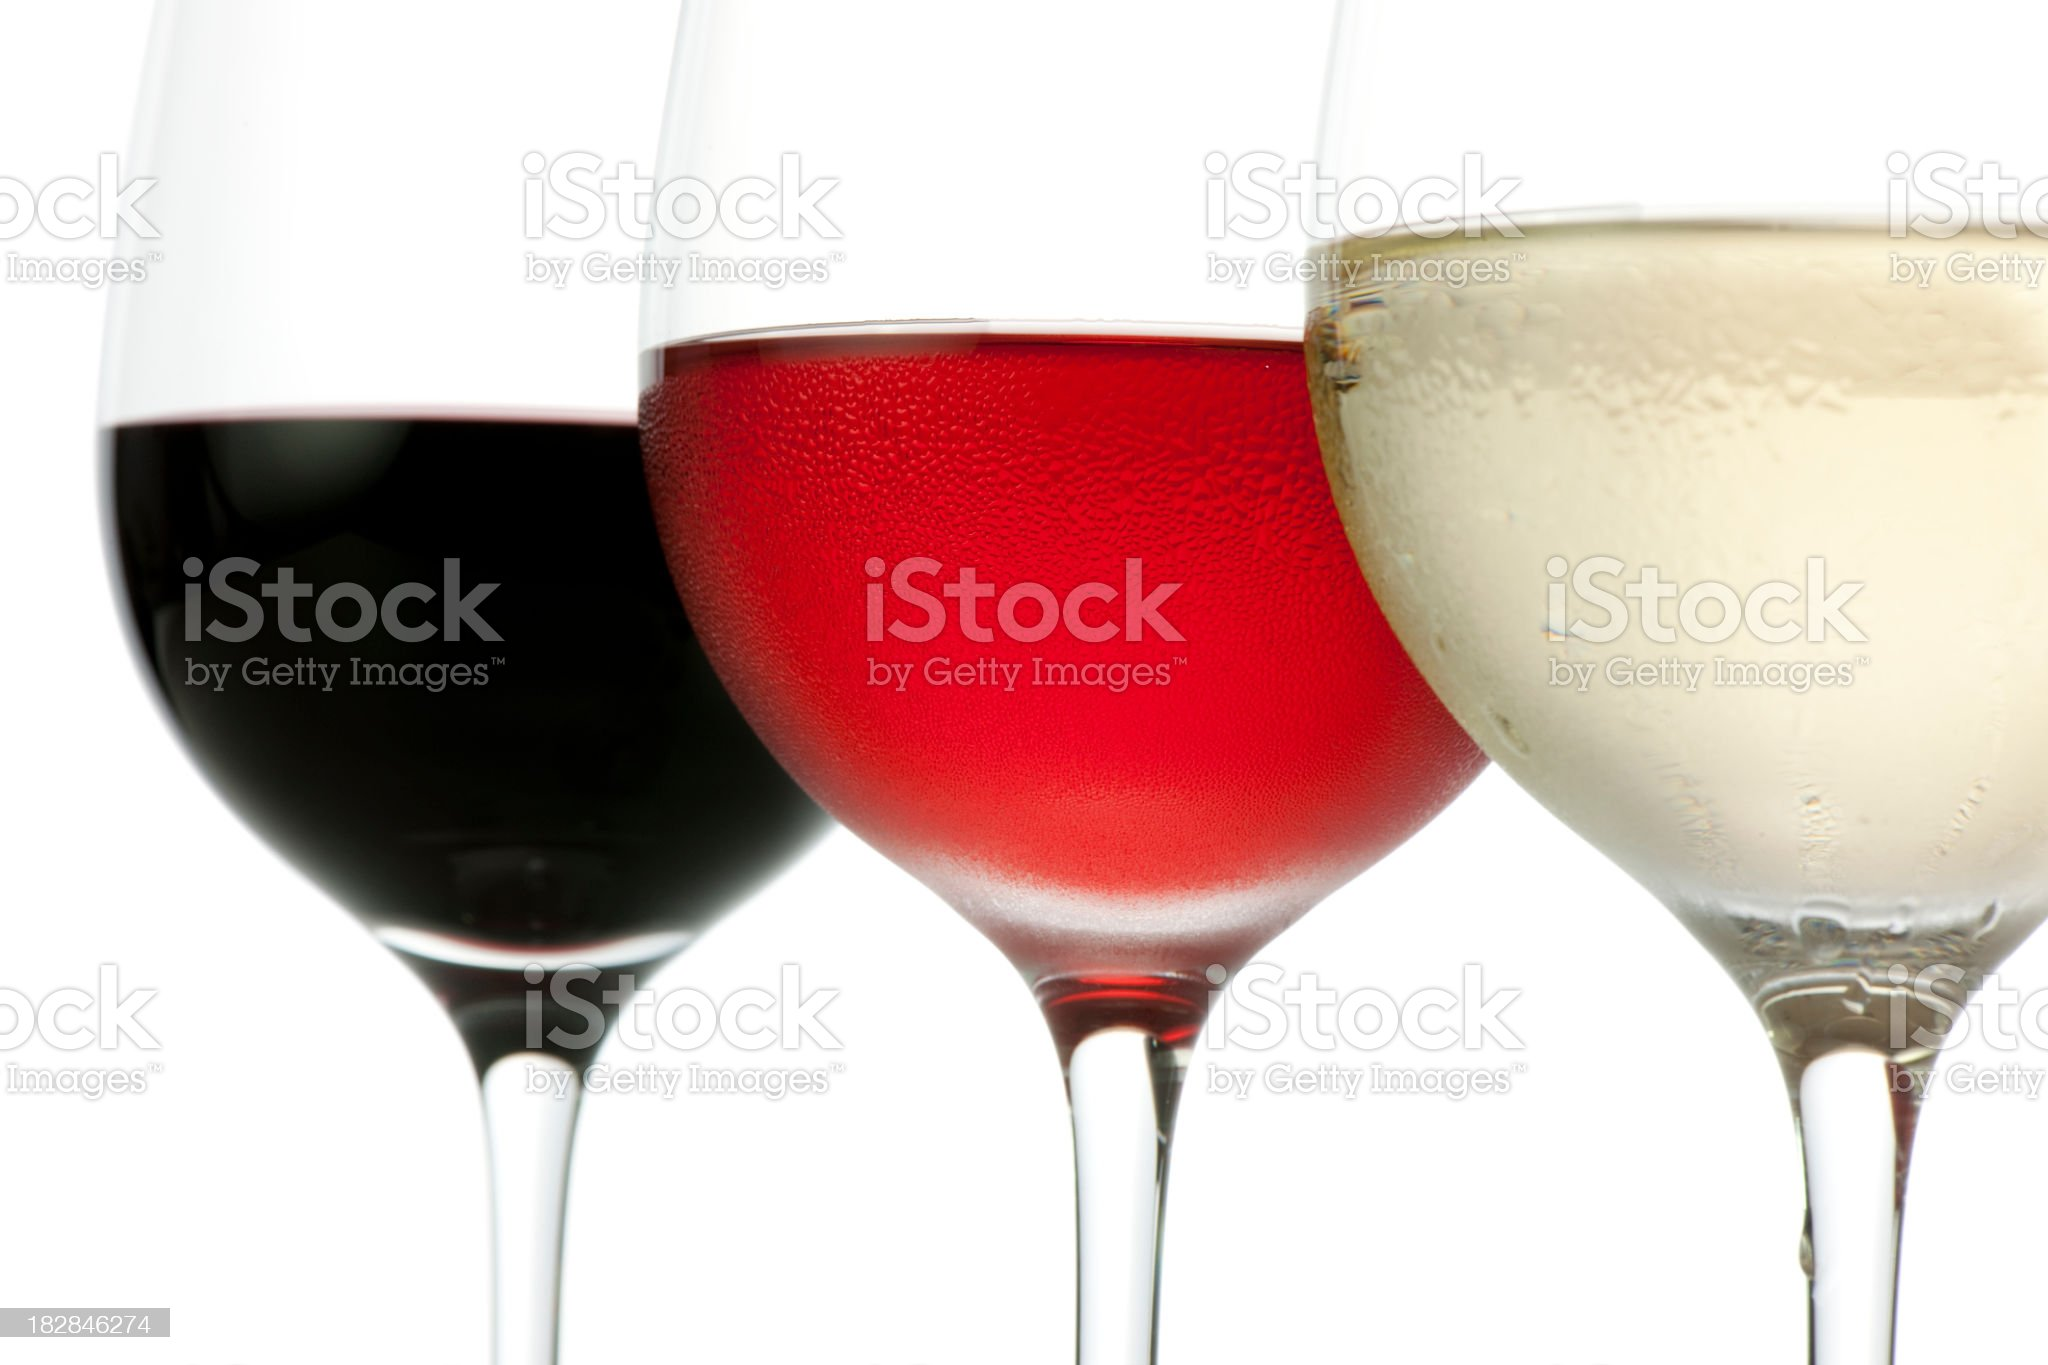 Colors of wine (glasses misted up) royalty-free stock photo